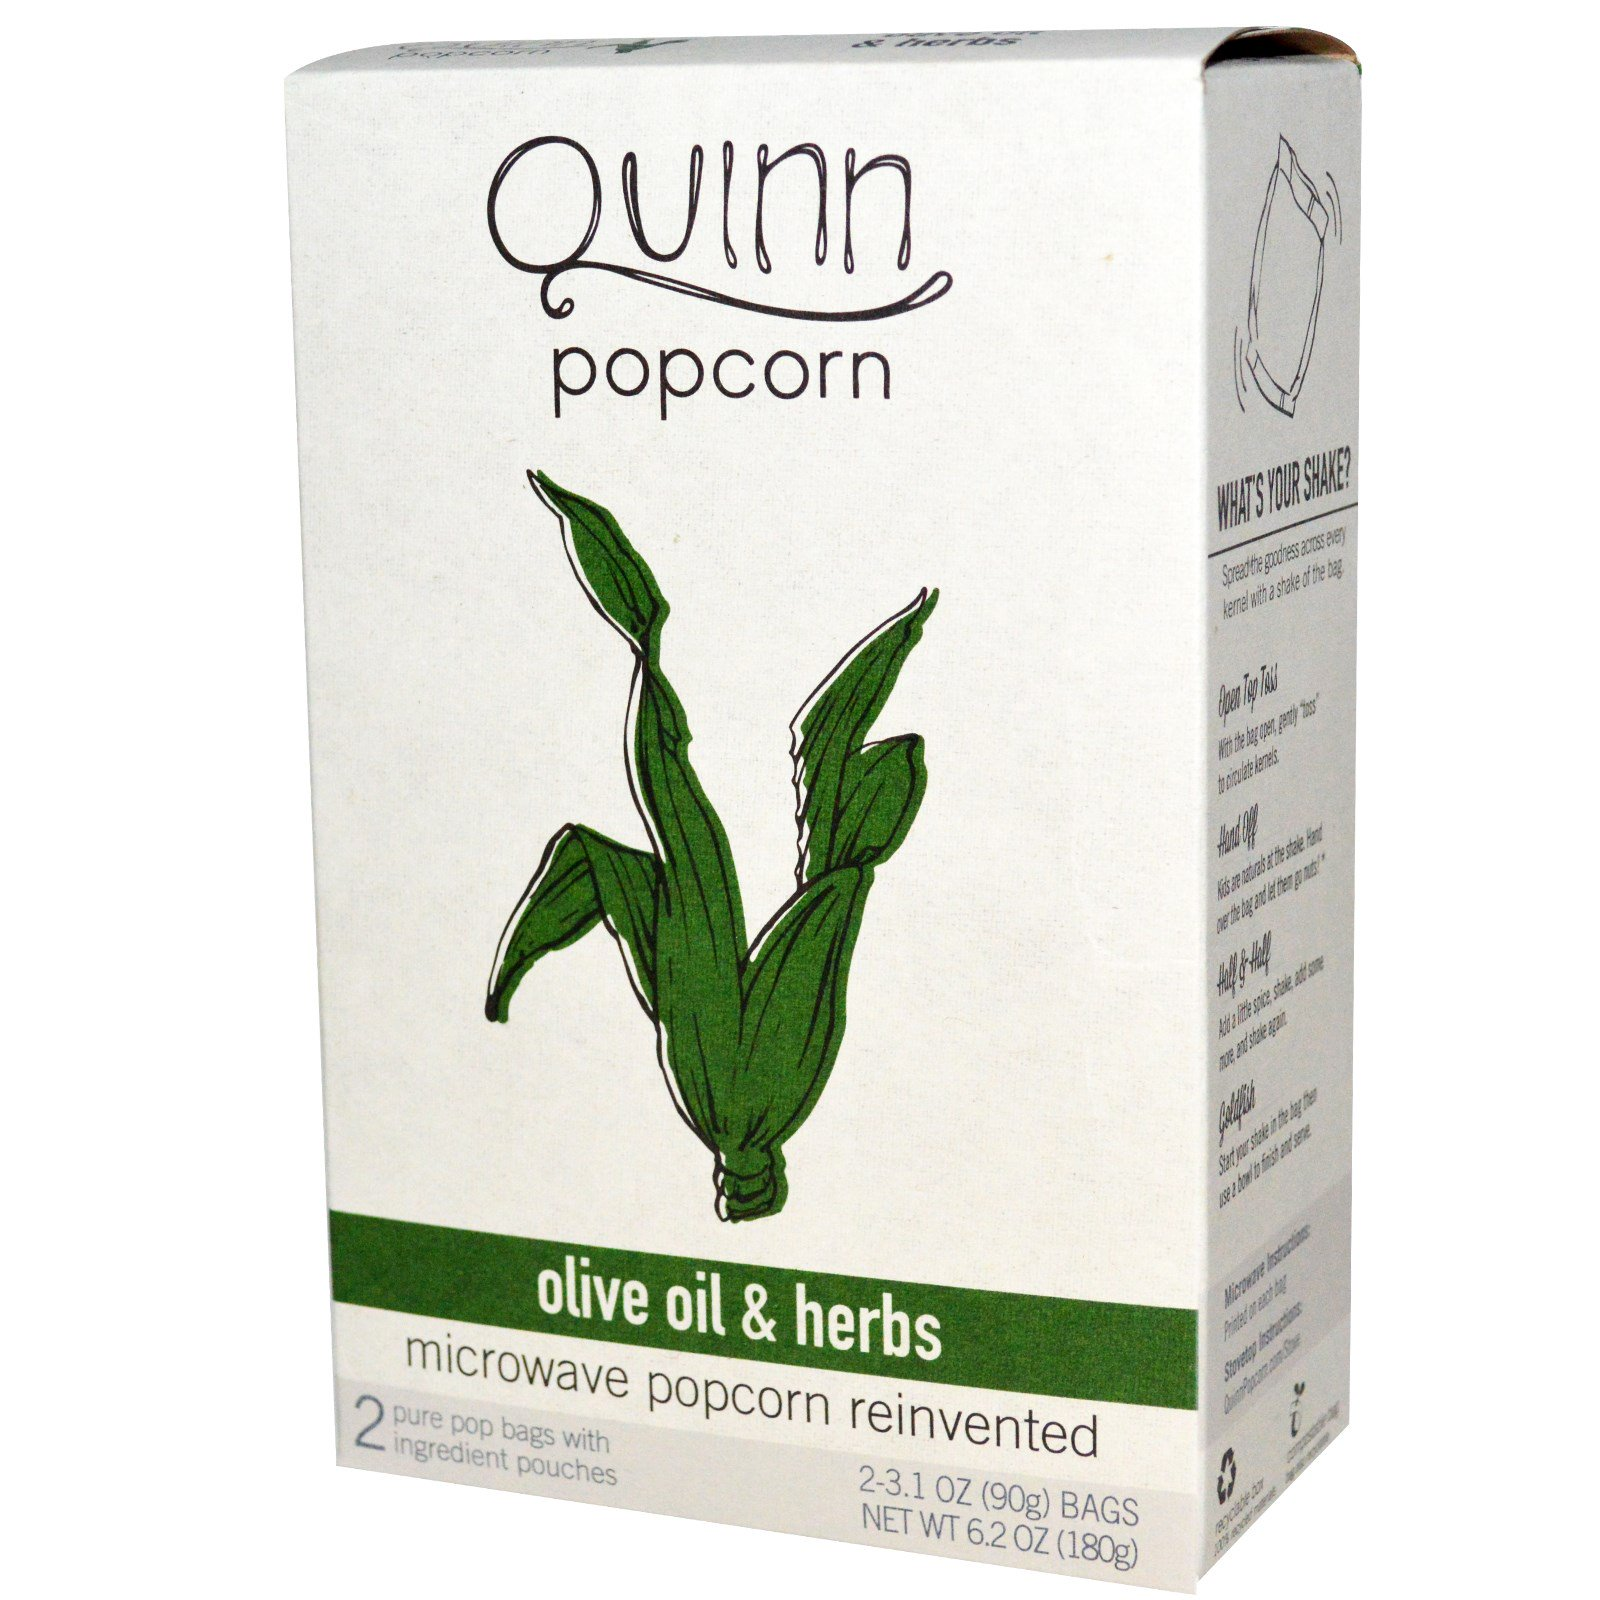 quinn popcorn microwave popcorn olive oil herbs 2 bags 3 1 oz 90 g each discontinued item